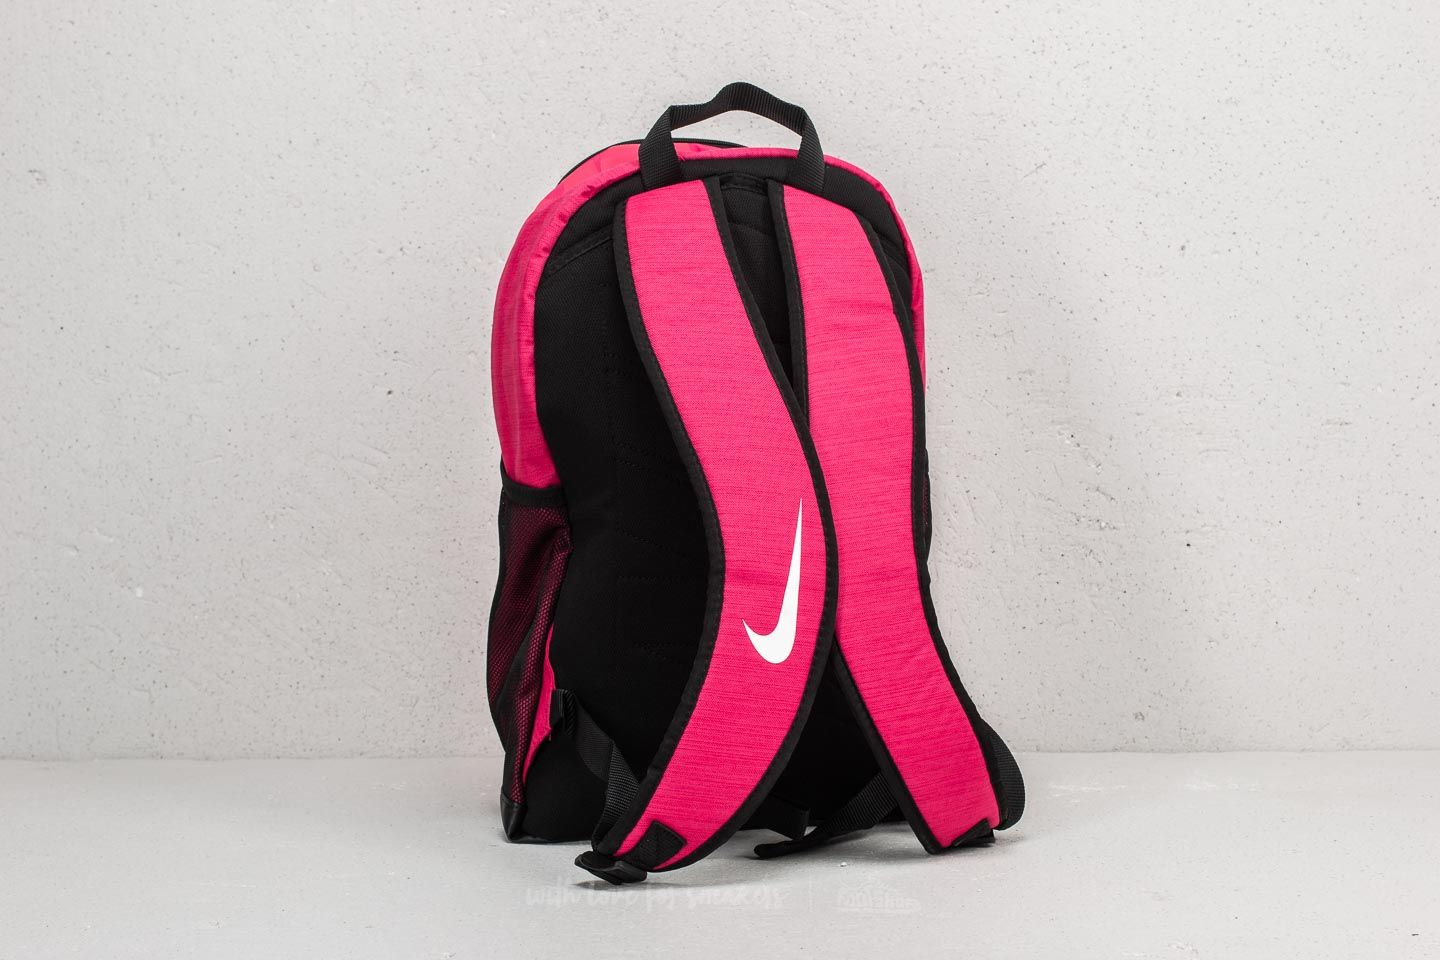 ce2b59d15870 Nike Brasilia M Backpack Pink  Black  White at a great price  41 buy at